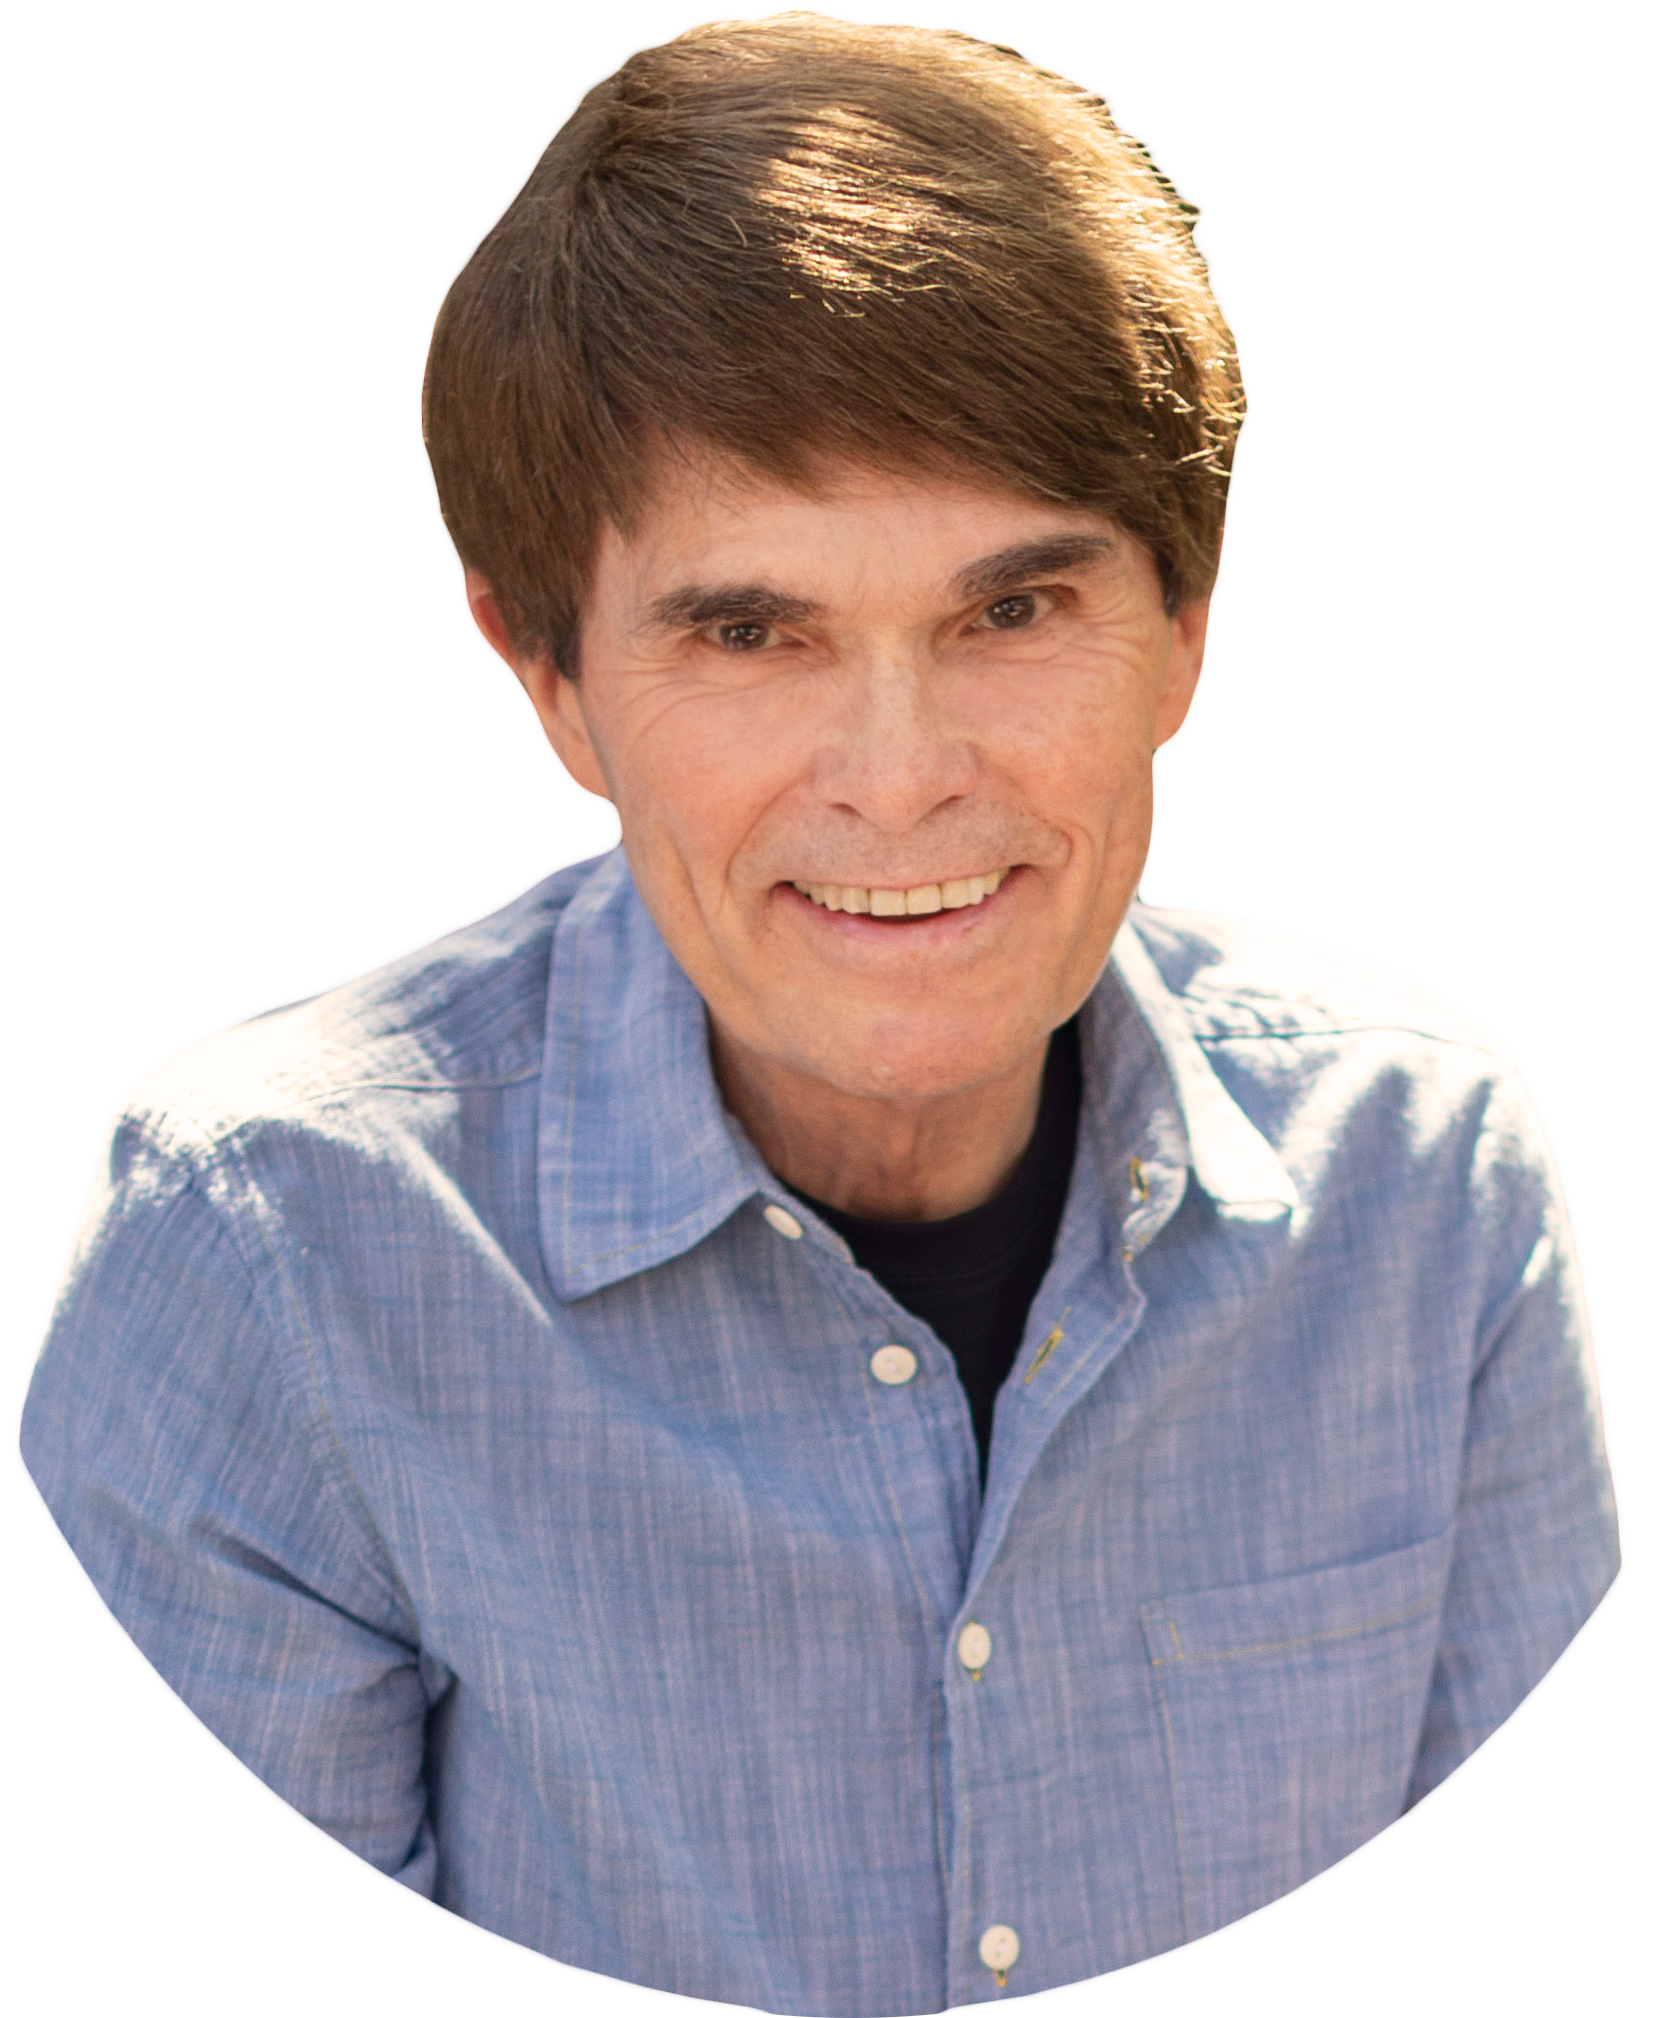 Bestselling thriller icon Dean Koontz kicks off a five-book deal with Amazon imprint Thomas & Mercer.